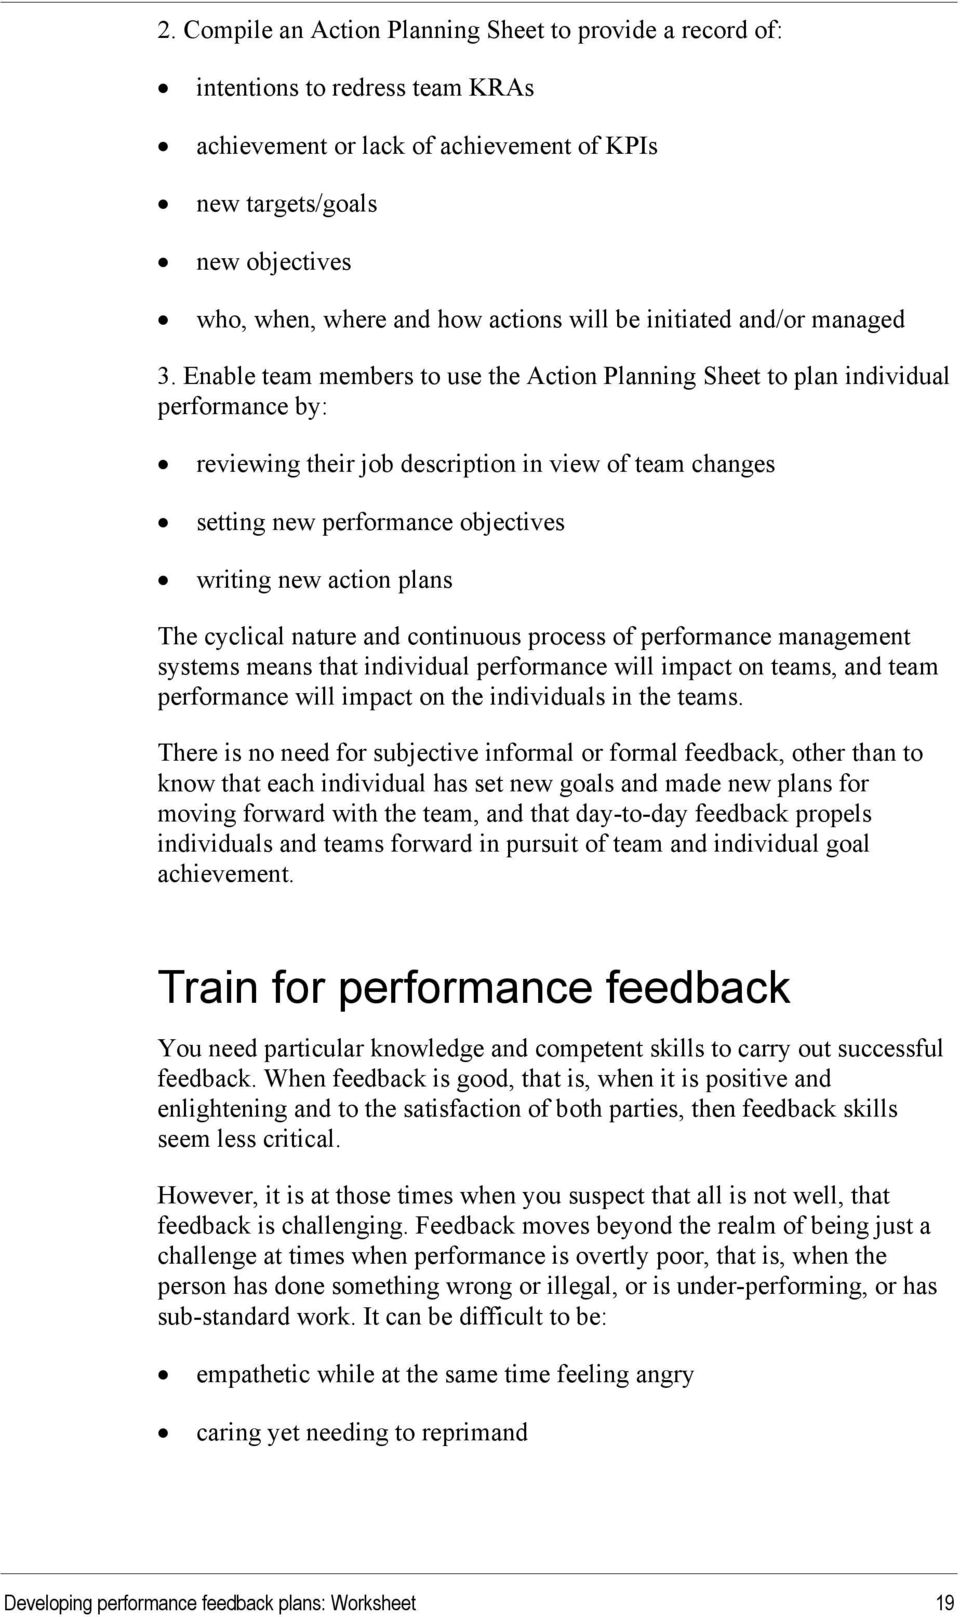 Enable team members to use the Action Planning Sheet to plan individual performance by: reviewing their job description in view of team changes setting new performance objectives writing new action